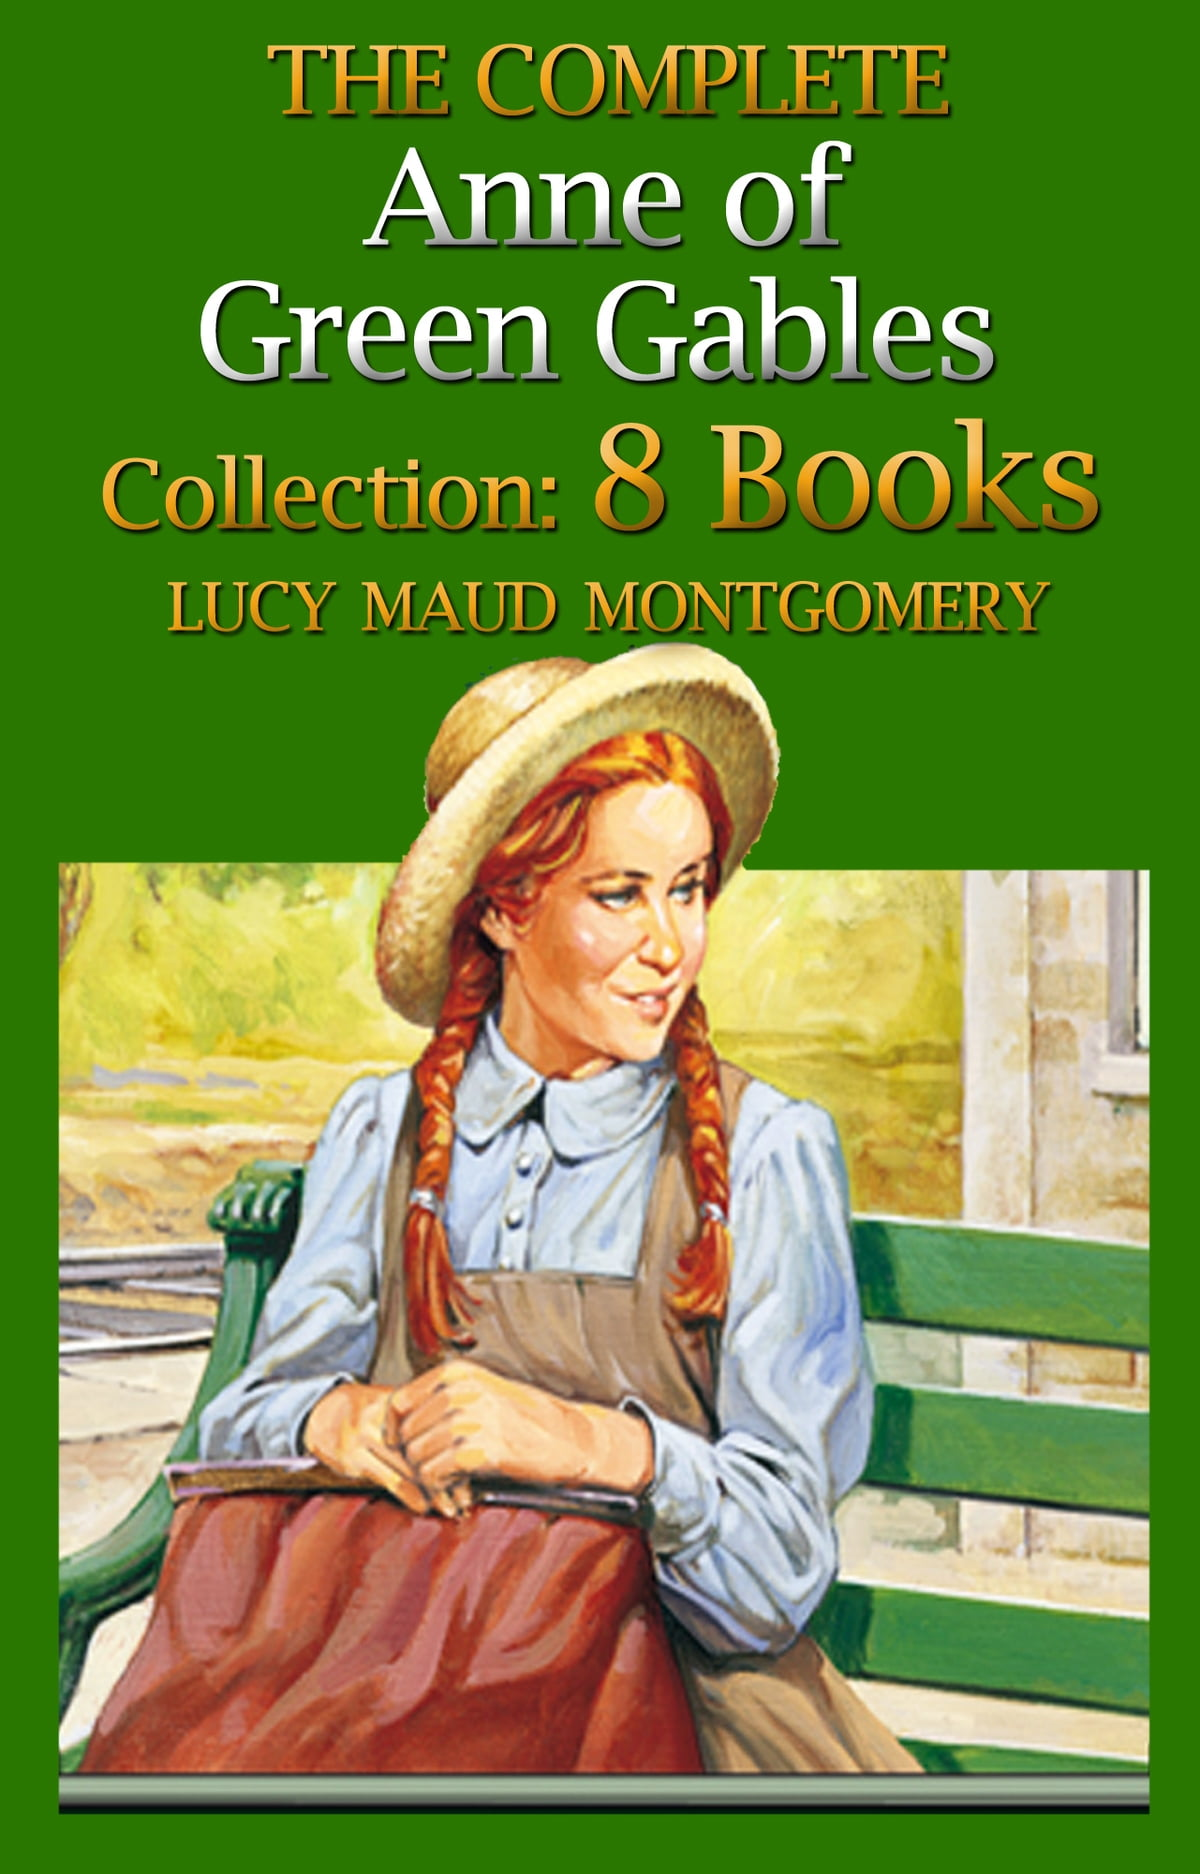 The Complete Anne of Green Gables Boxed Set ( Anne of Green Gables, Anne of  Avonlea, Anne of the Island,Anne's House of Dreams, Rainbow Valley,Rilla of  Ingleside, Chronicles of Avonlea, Further Chronicles